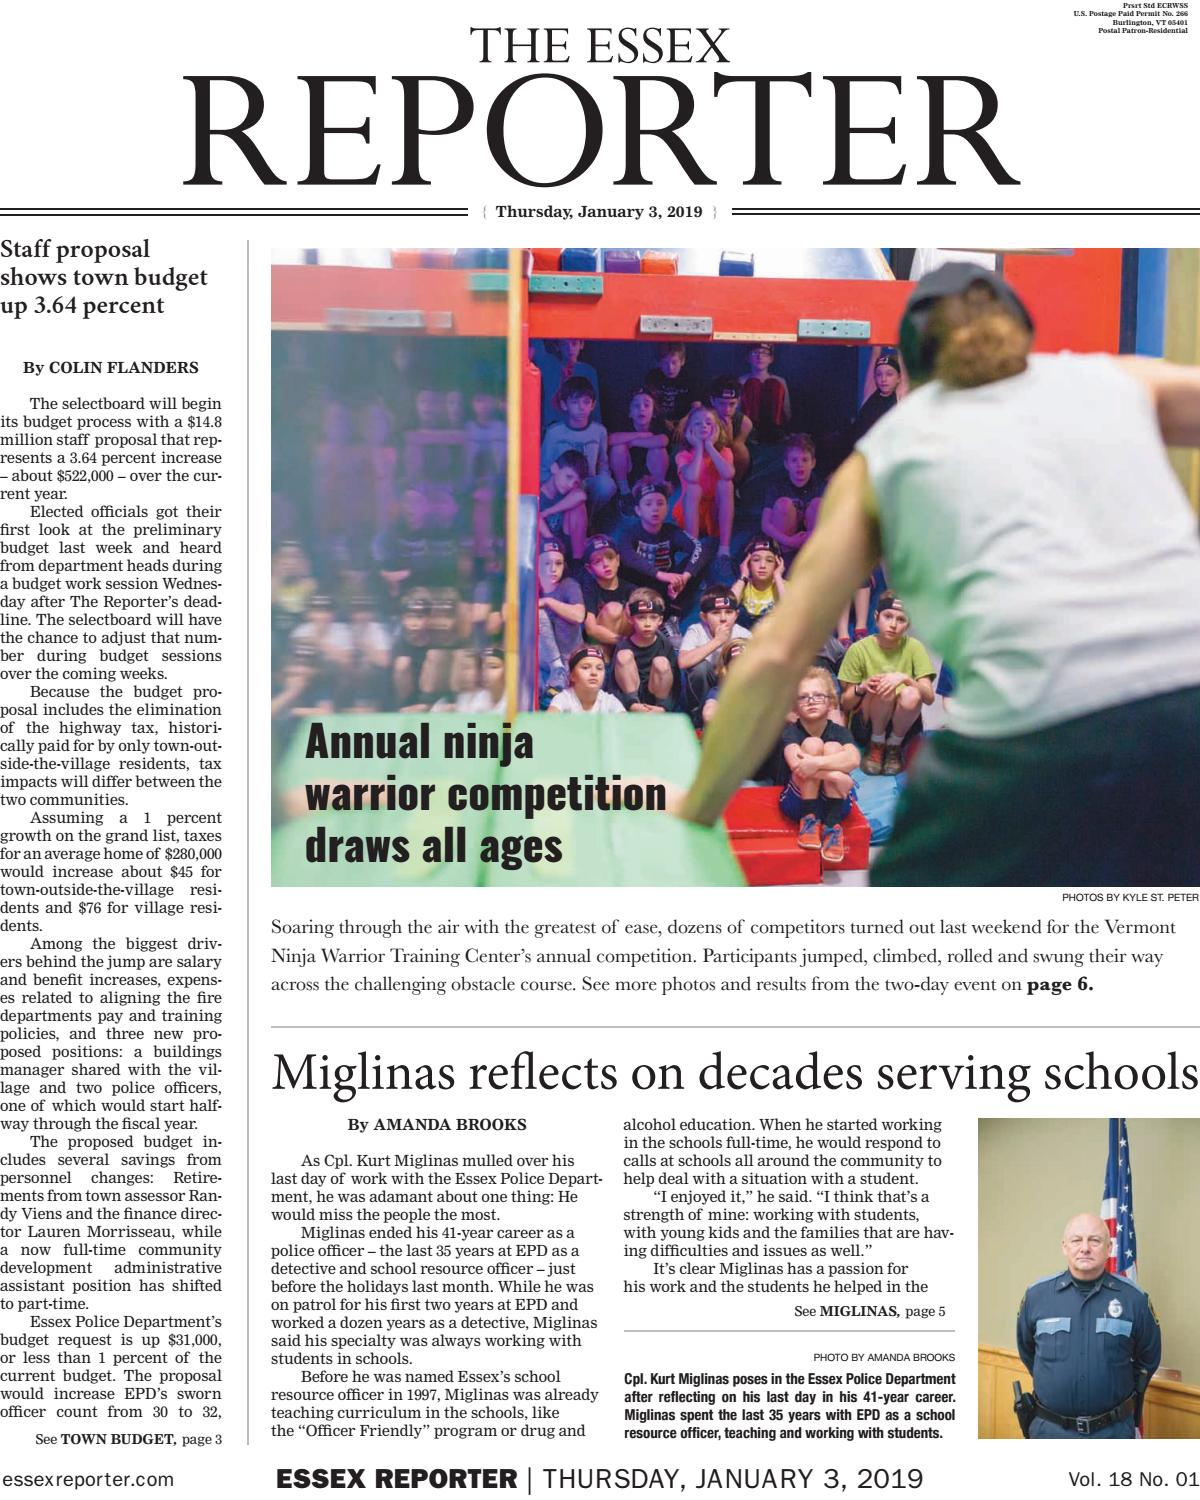 The Essex Reporter: January 3, 2019 by Essex Reporter - issuu